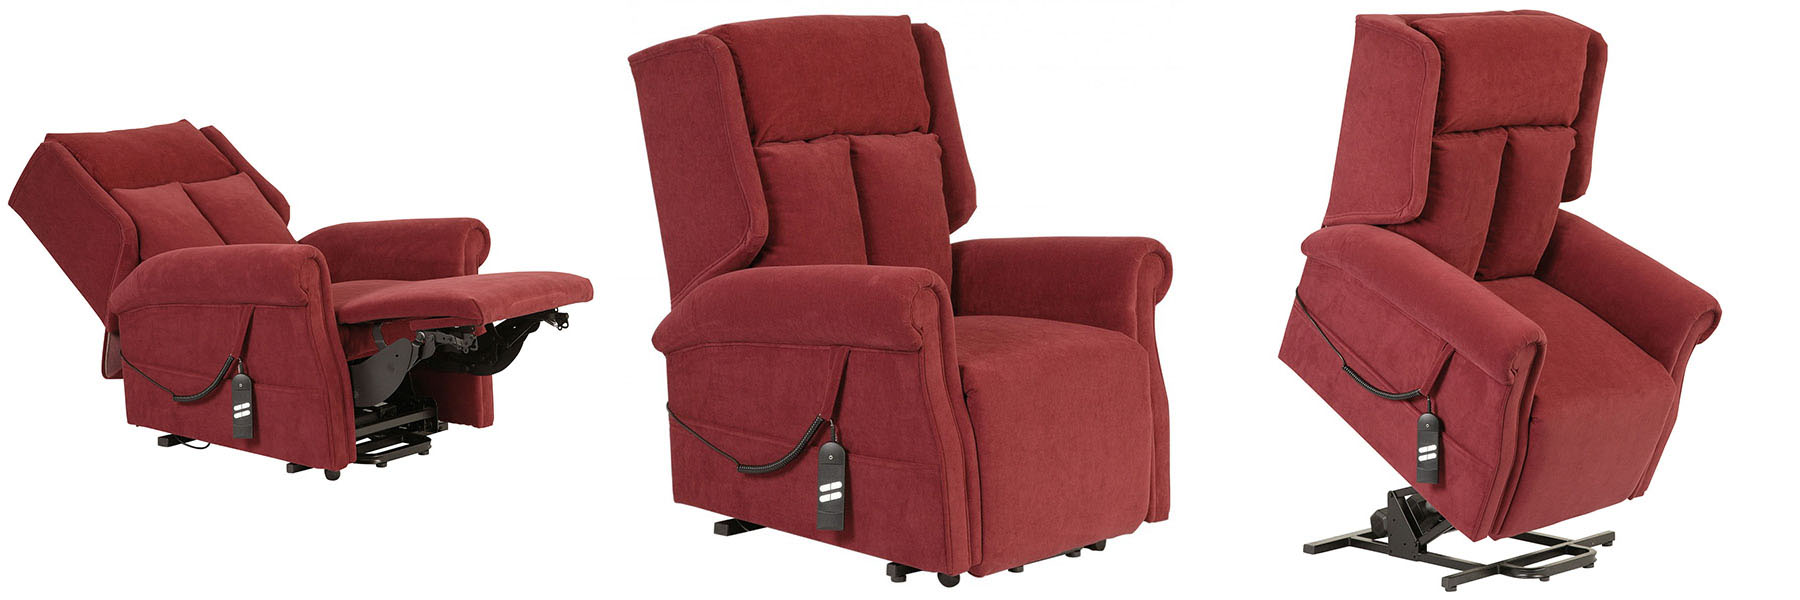 The T-Back rise and recliner chair